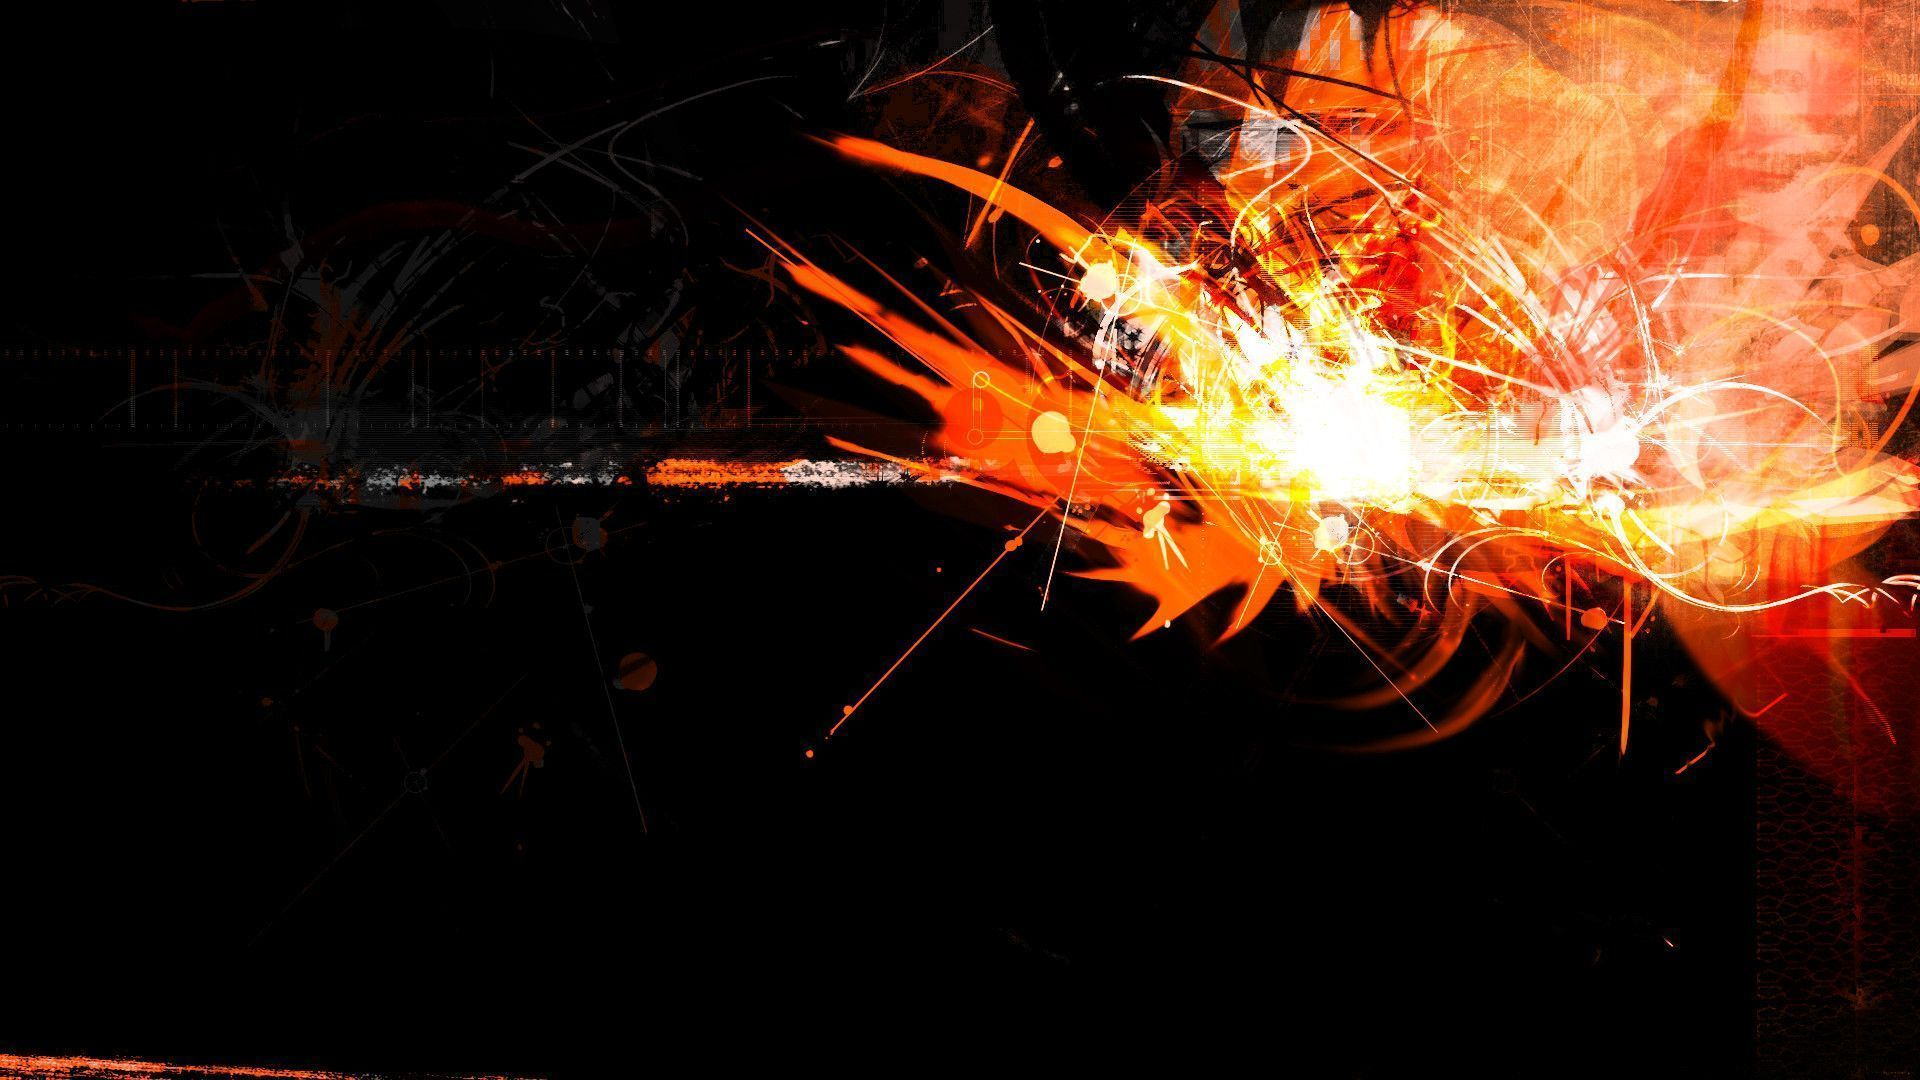 Black And Orange Backgrounds 32 Wallpapers Adorable Wallpapers 1920x1080